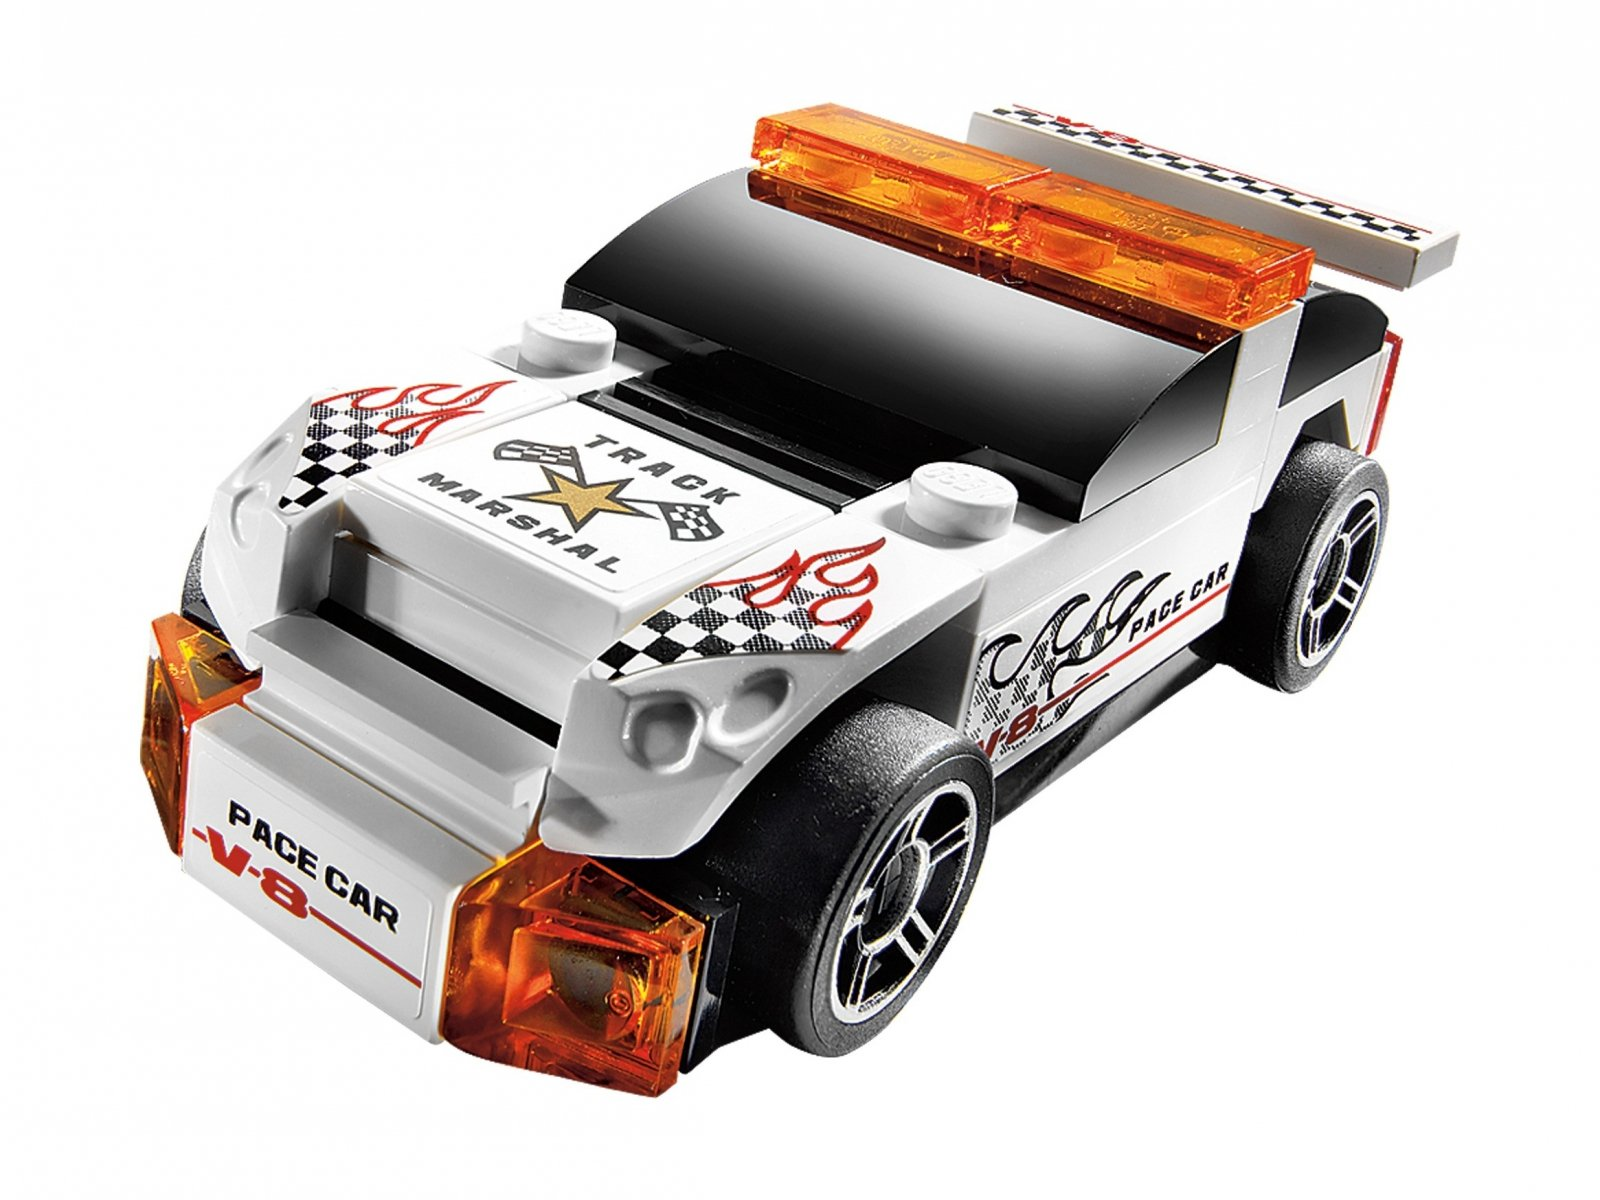 LEGO 8121 Racers Track Marshal